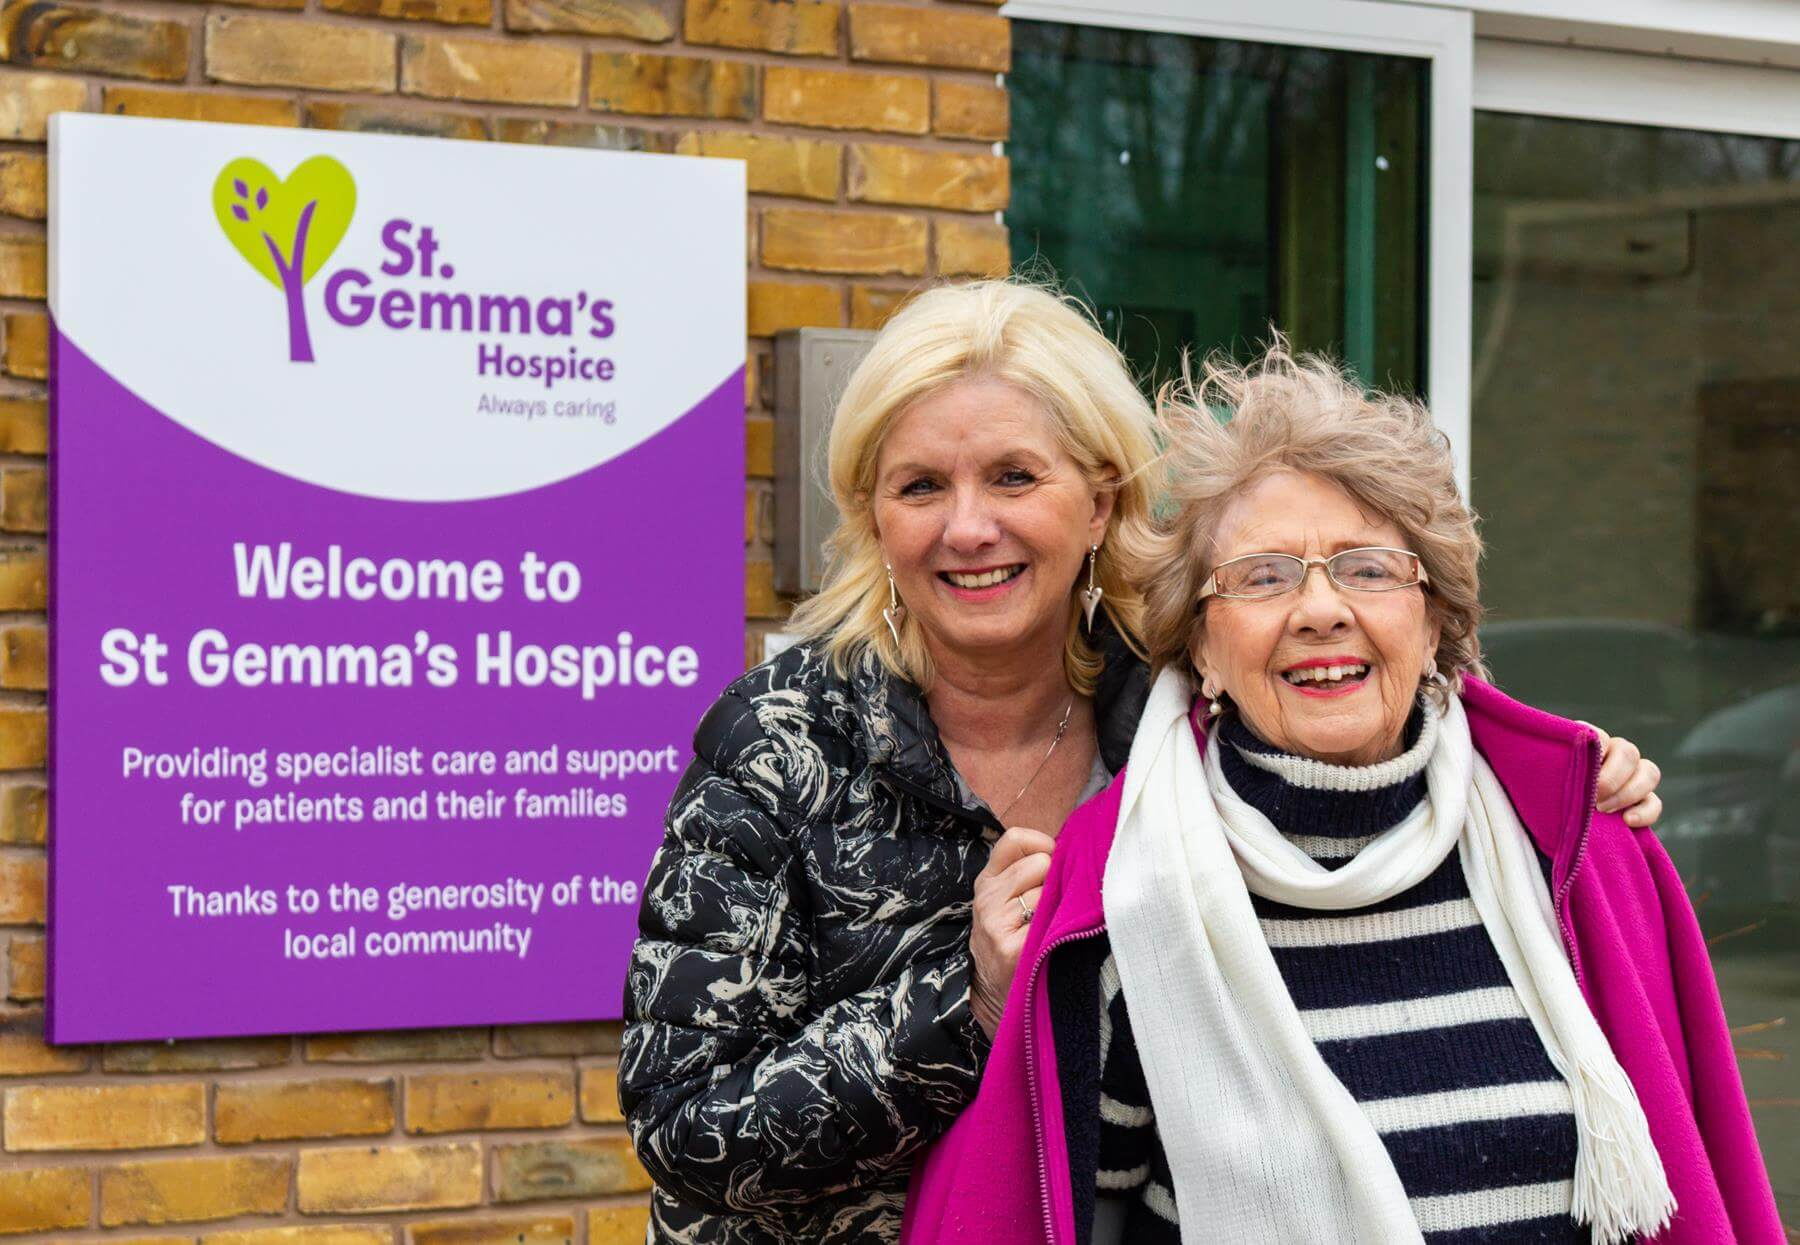 Women smiling next to St Gemma's Hospice sign